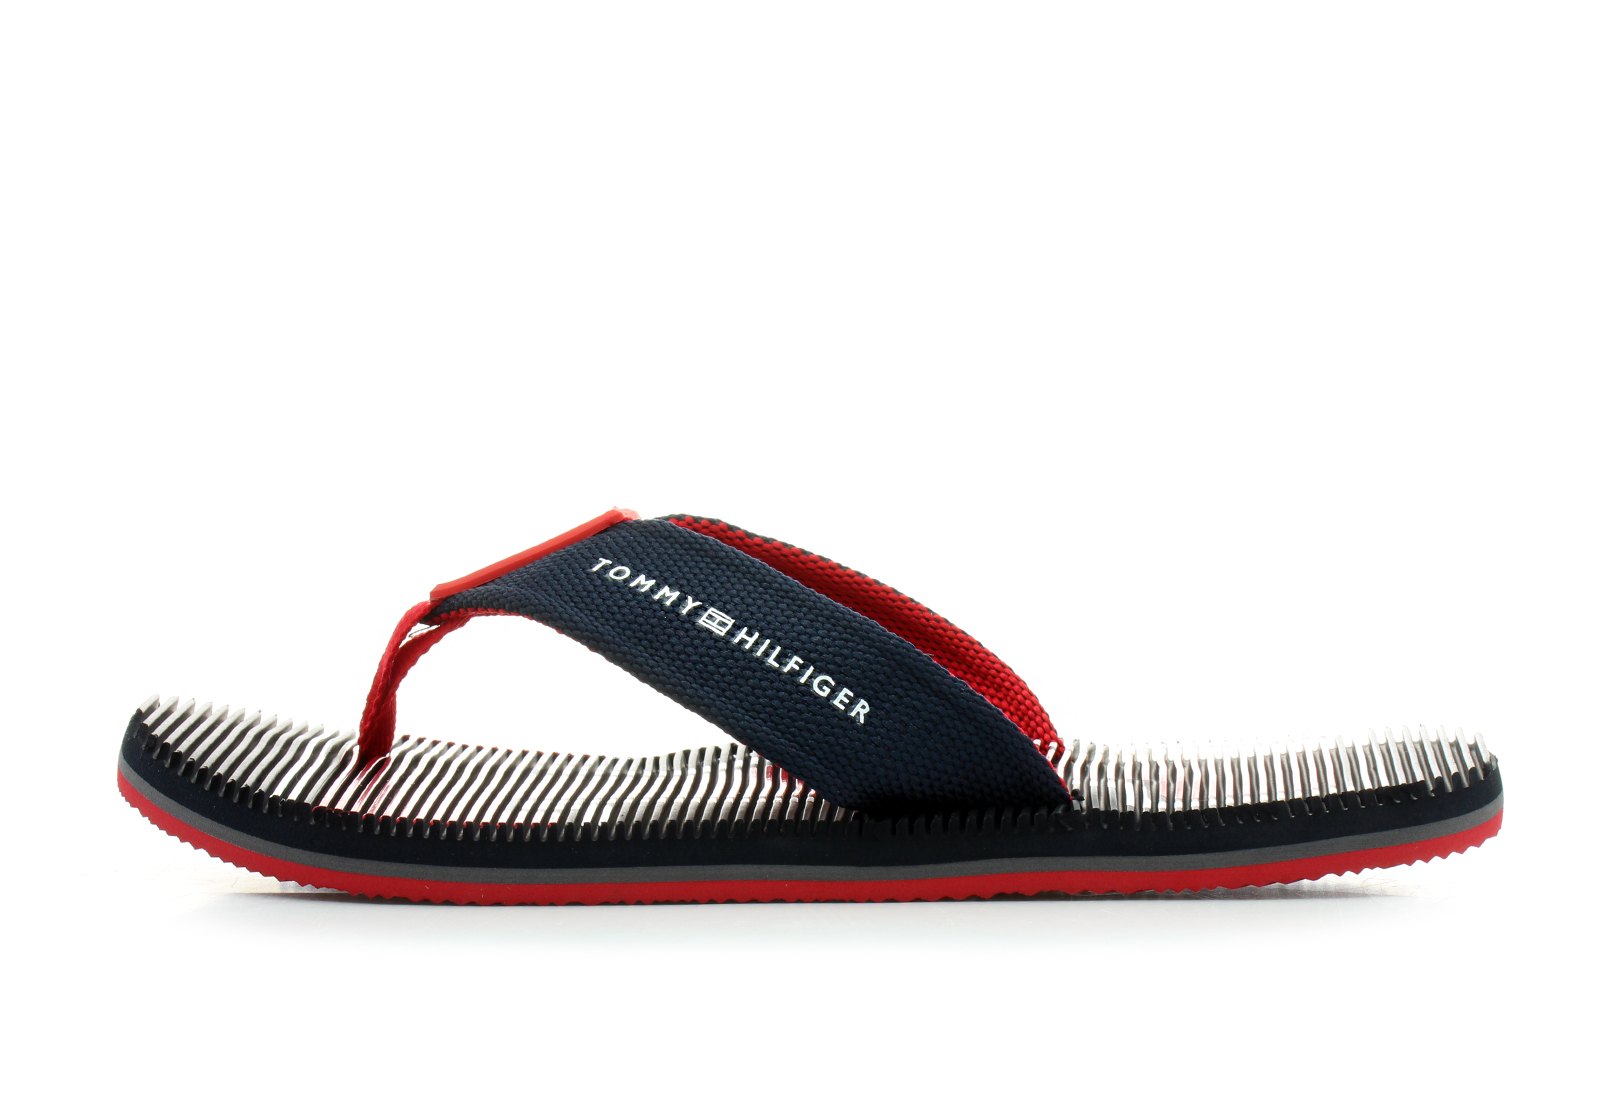 fe7348da86 Tommy Hilfiger Papucs - Floyd 25 - 18S-1364-403 - Office Shoes ...